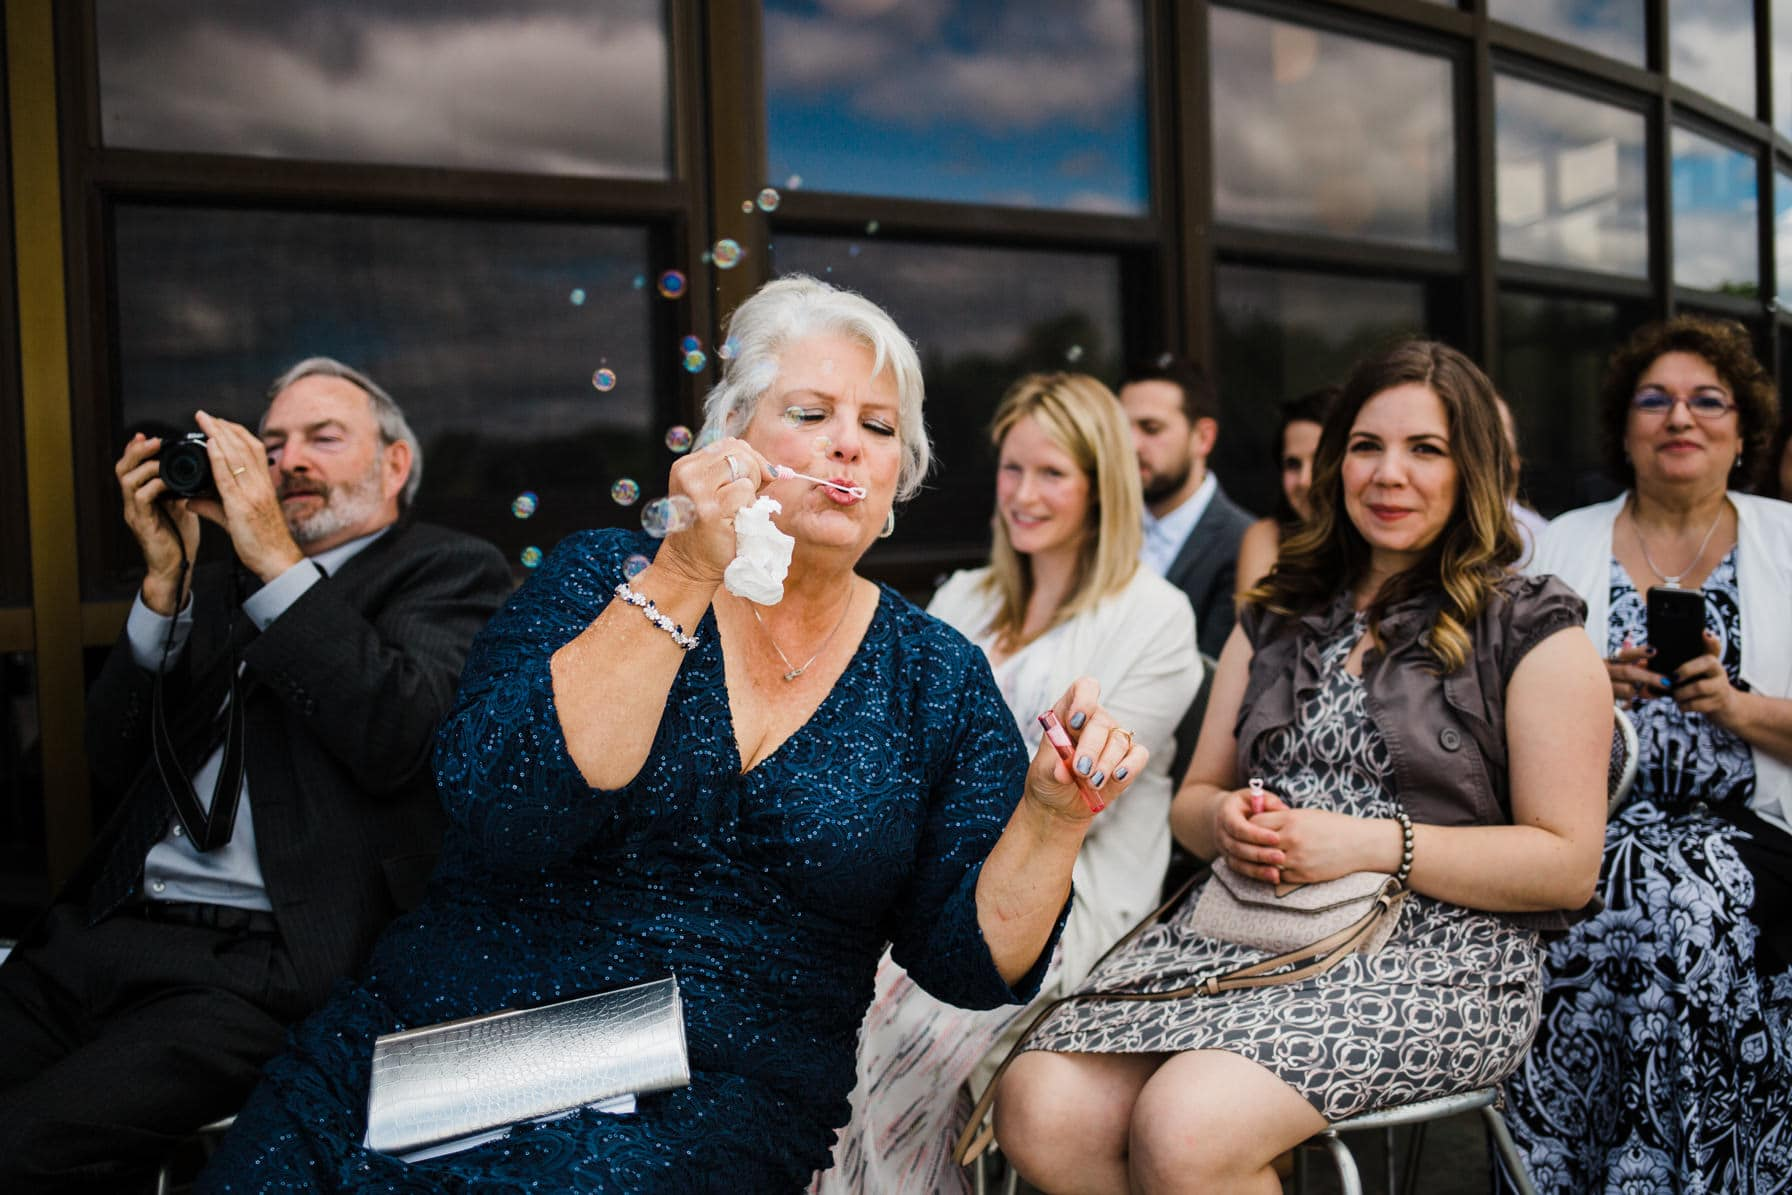 Lago Bar and Grill Wedding - Guests blow bubbles